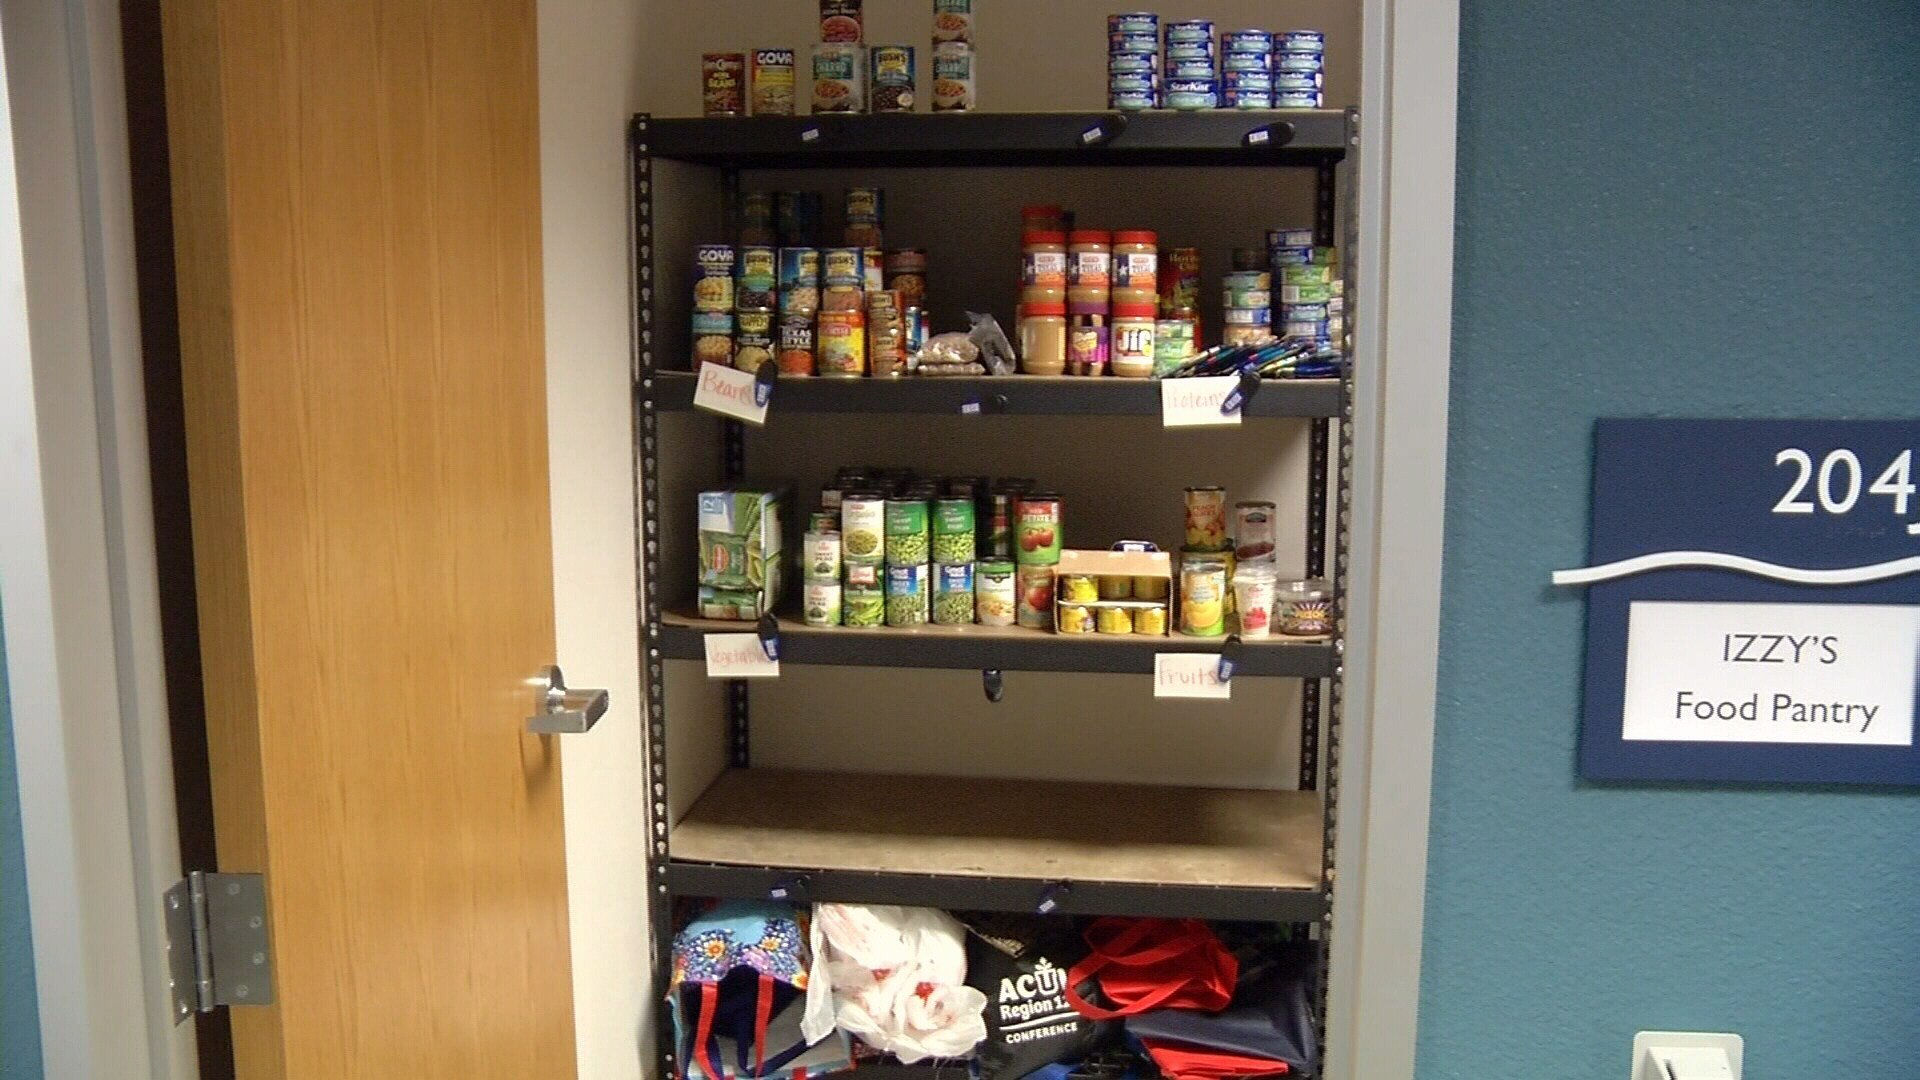 Izzy's Food Pantry at TAMU-CC.